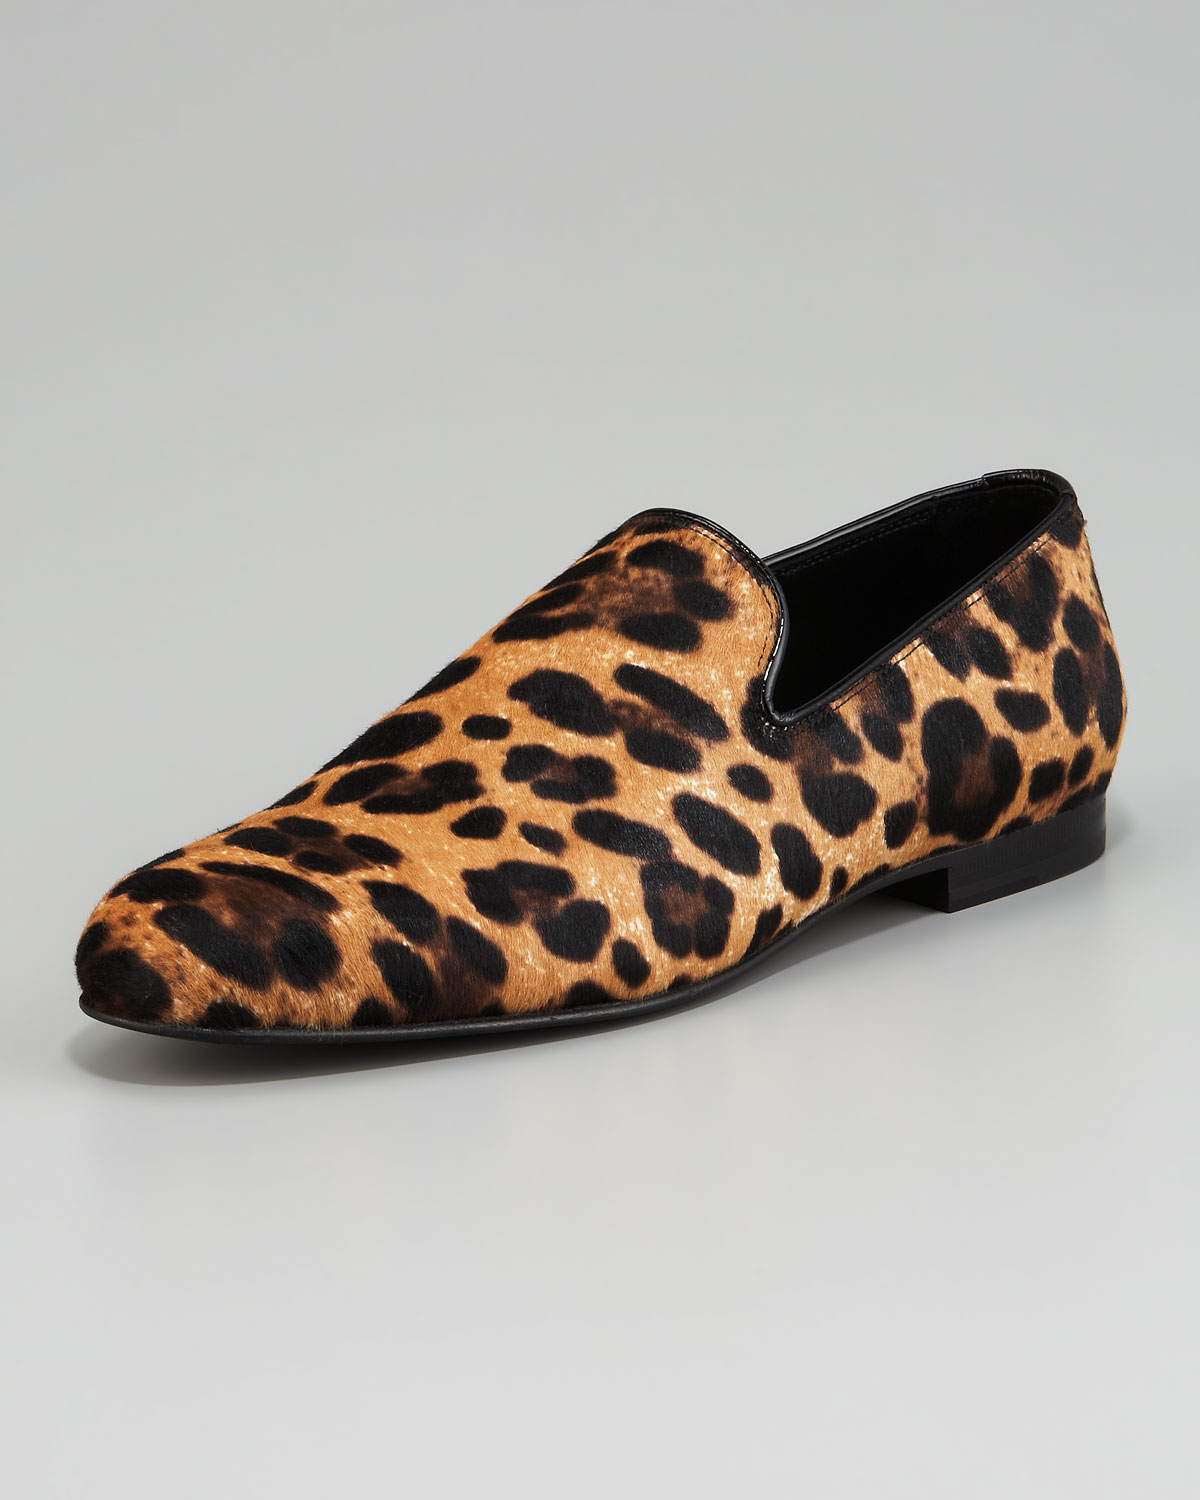 d1a2c2bf110 Jimmy Choo Leopard-print Calf-hair Loafer for Men - Lyst